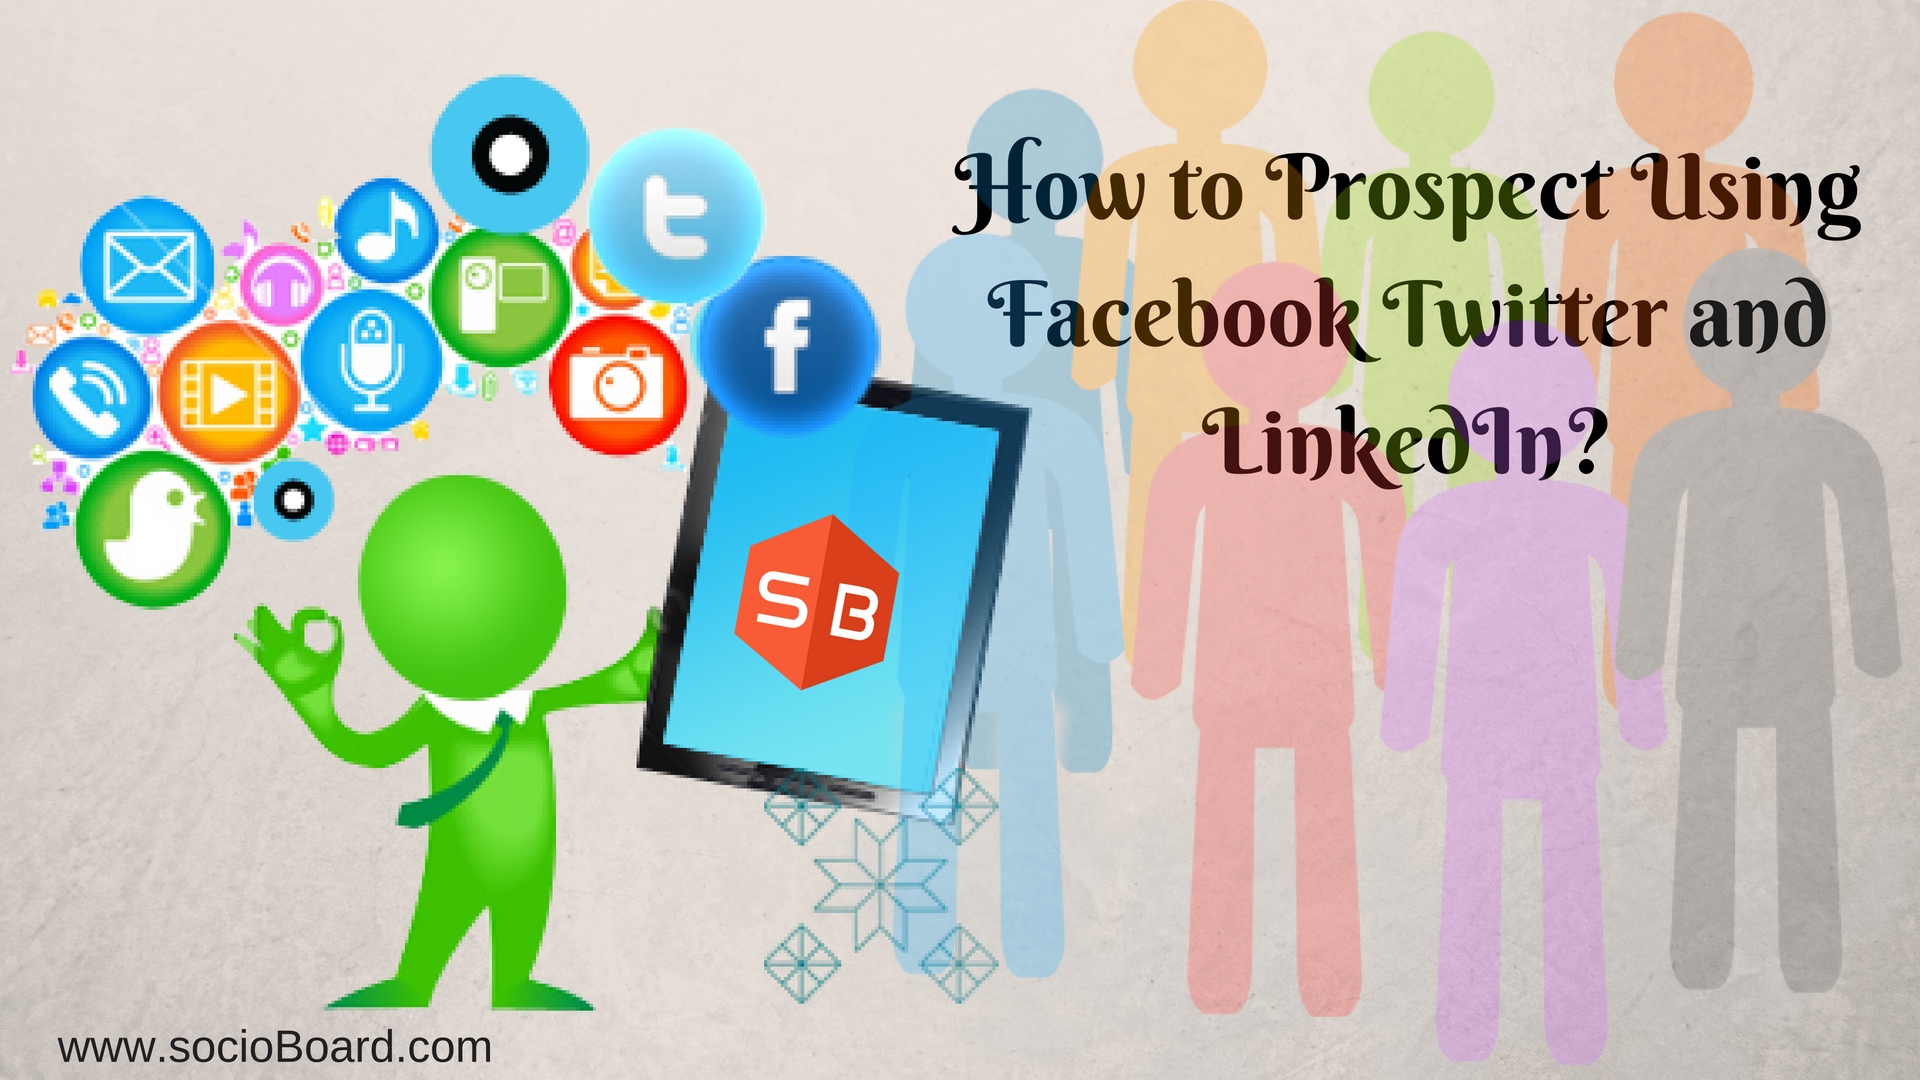 How to Prospect Using Facebook Twitter and LinkedIn in 2021?